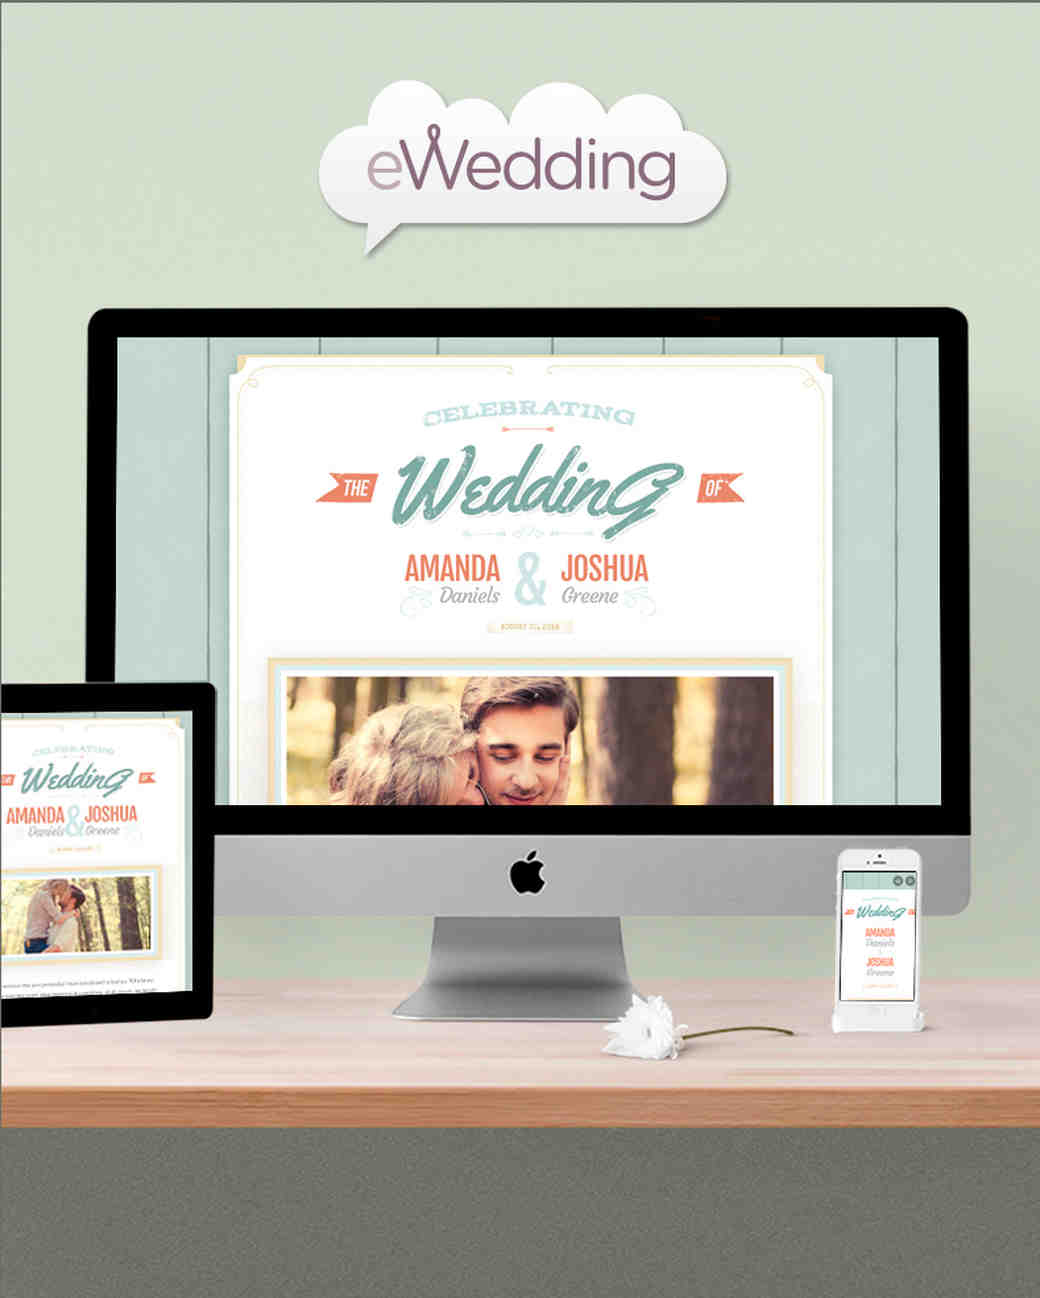 best wedding websites for building your big day domain